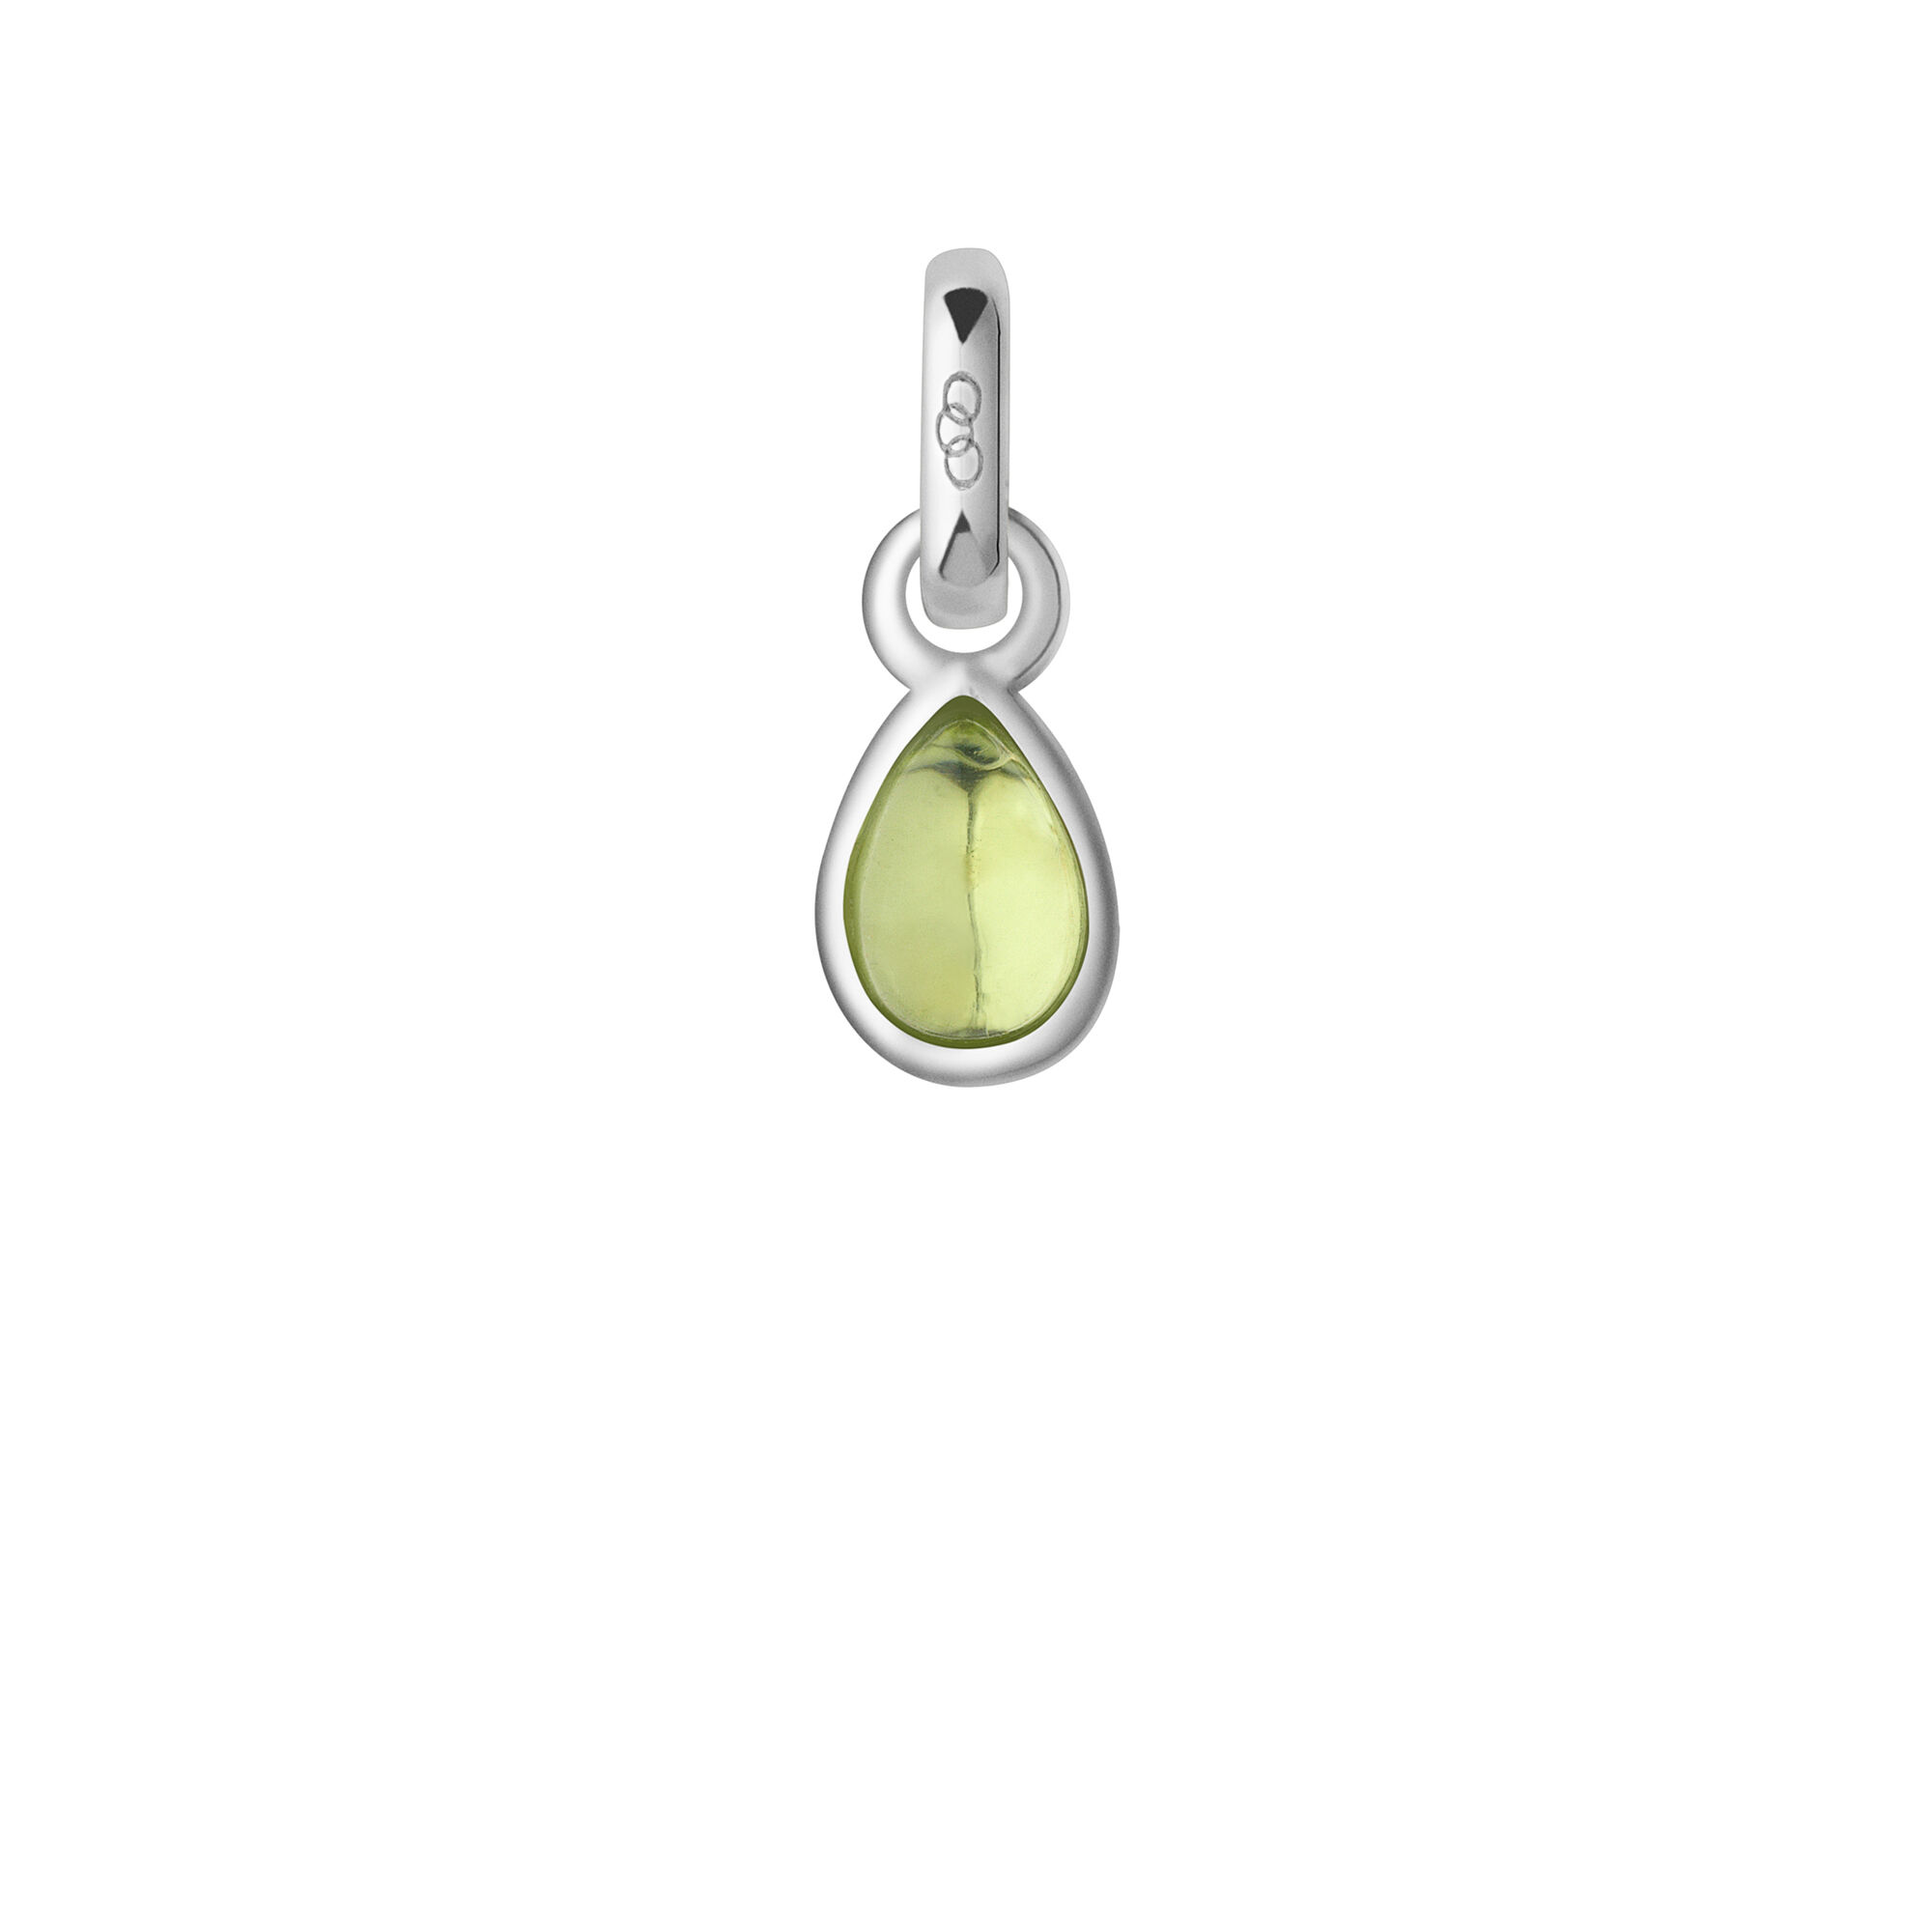 will in own your or delicate pendant is worn whether soon a illusion pin our statement august accessory its with birthstone elisa necklace that be on peridot layered